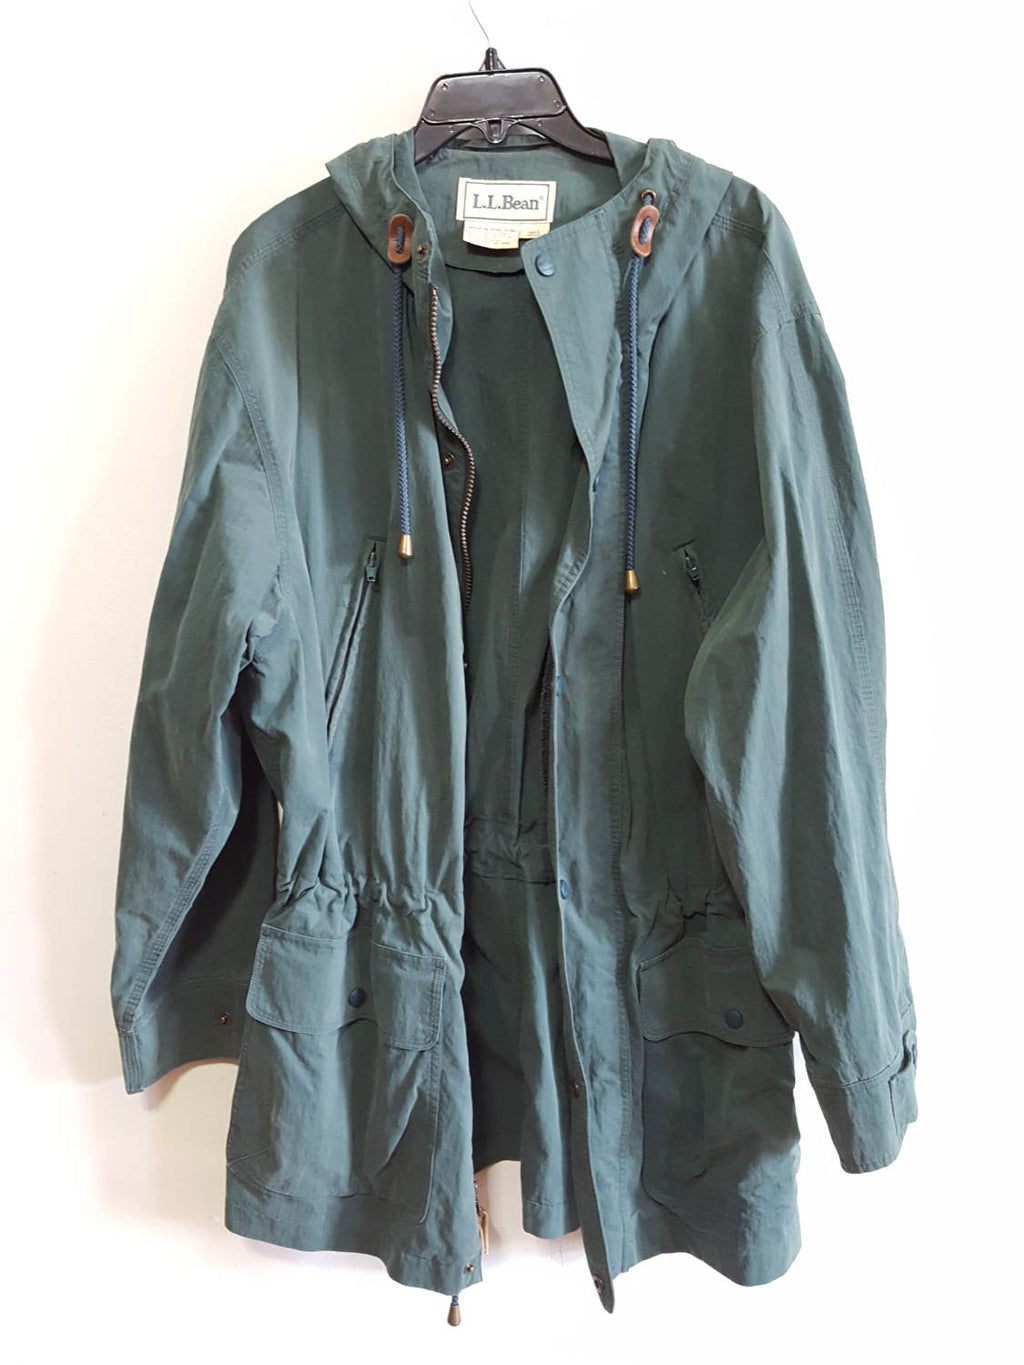 L.L. Bean Drawstring Jacket, Unisex, Green, Sz. M